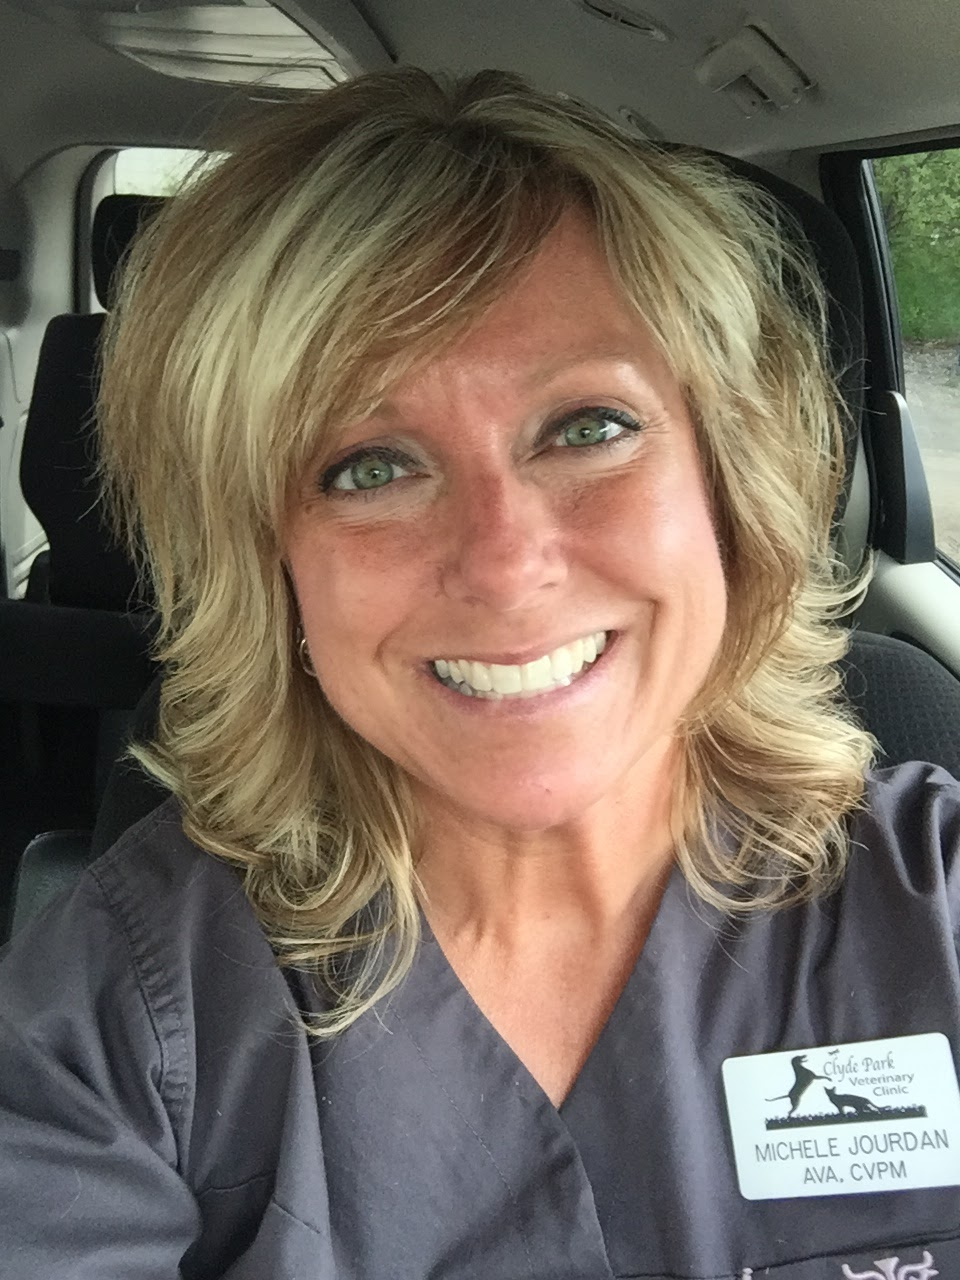 Michele Jourdan AVA, CVPM - Clyde Park Veterinary Clinic - Wyoming, Michigan